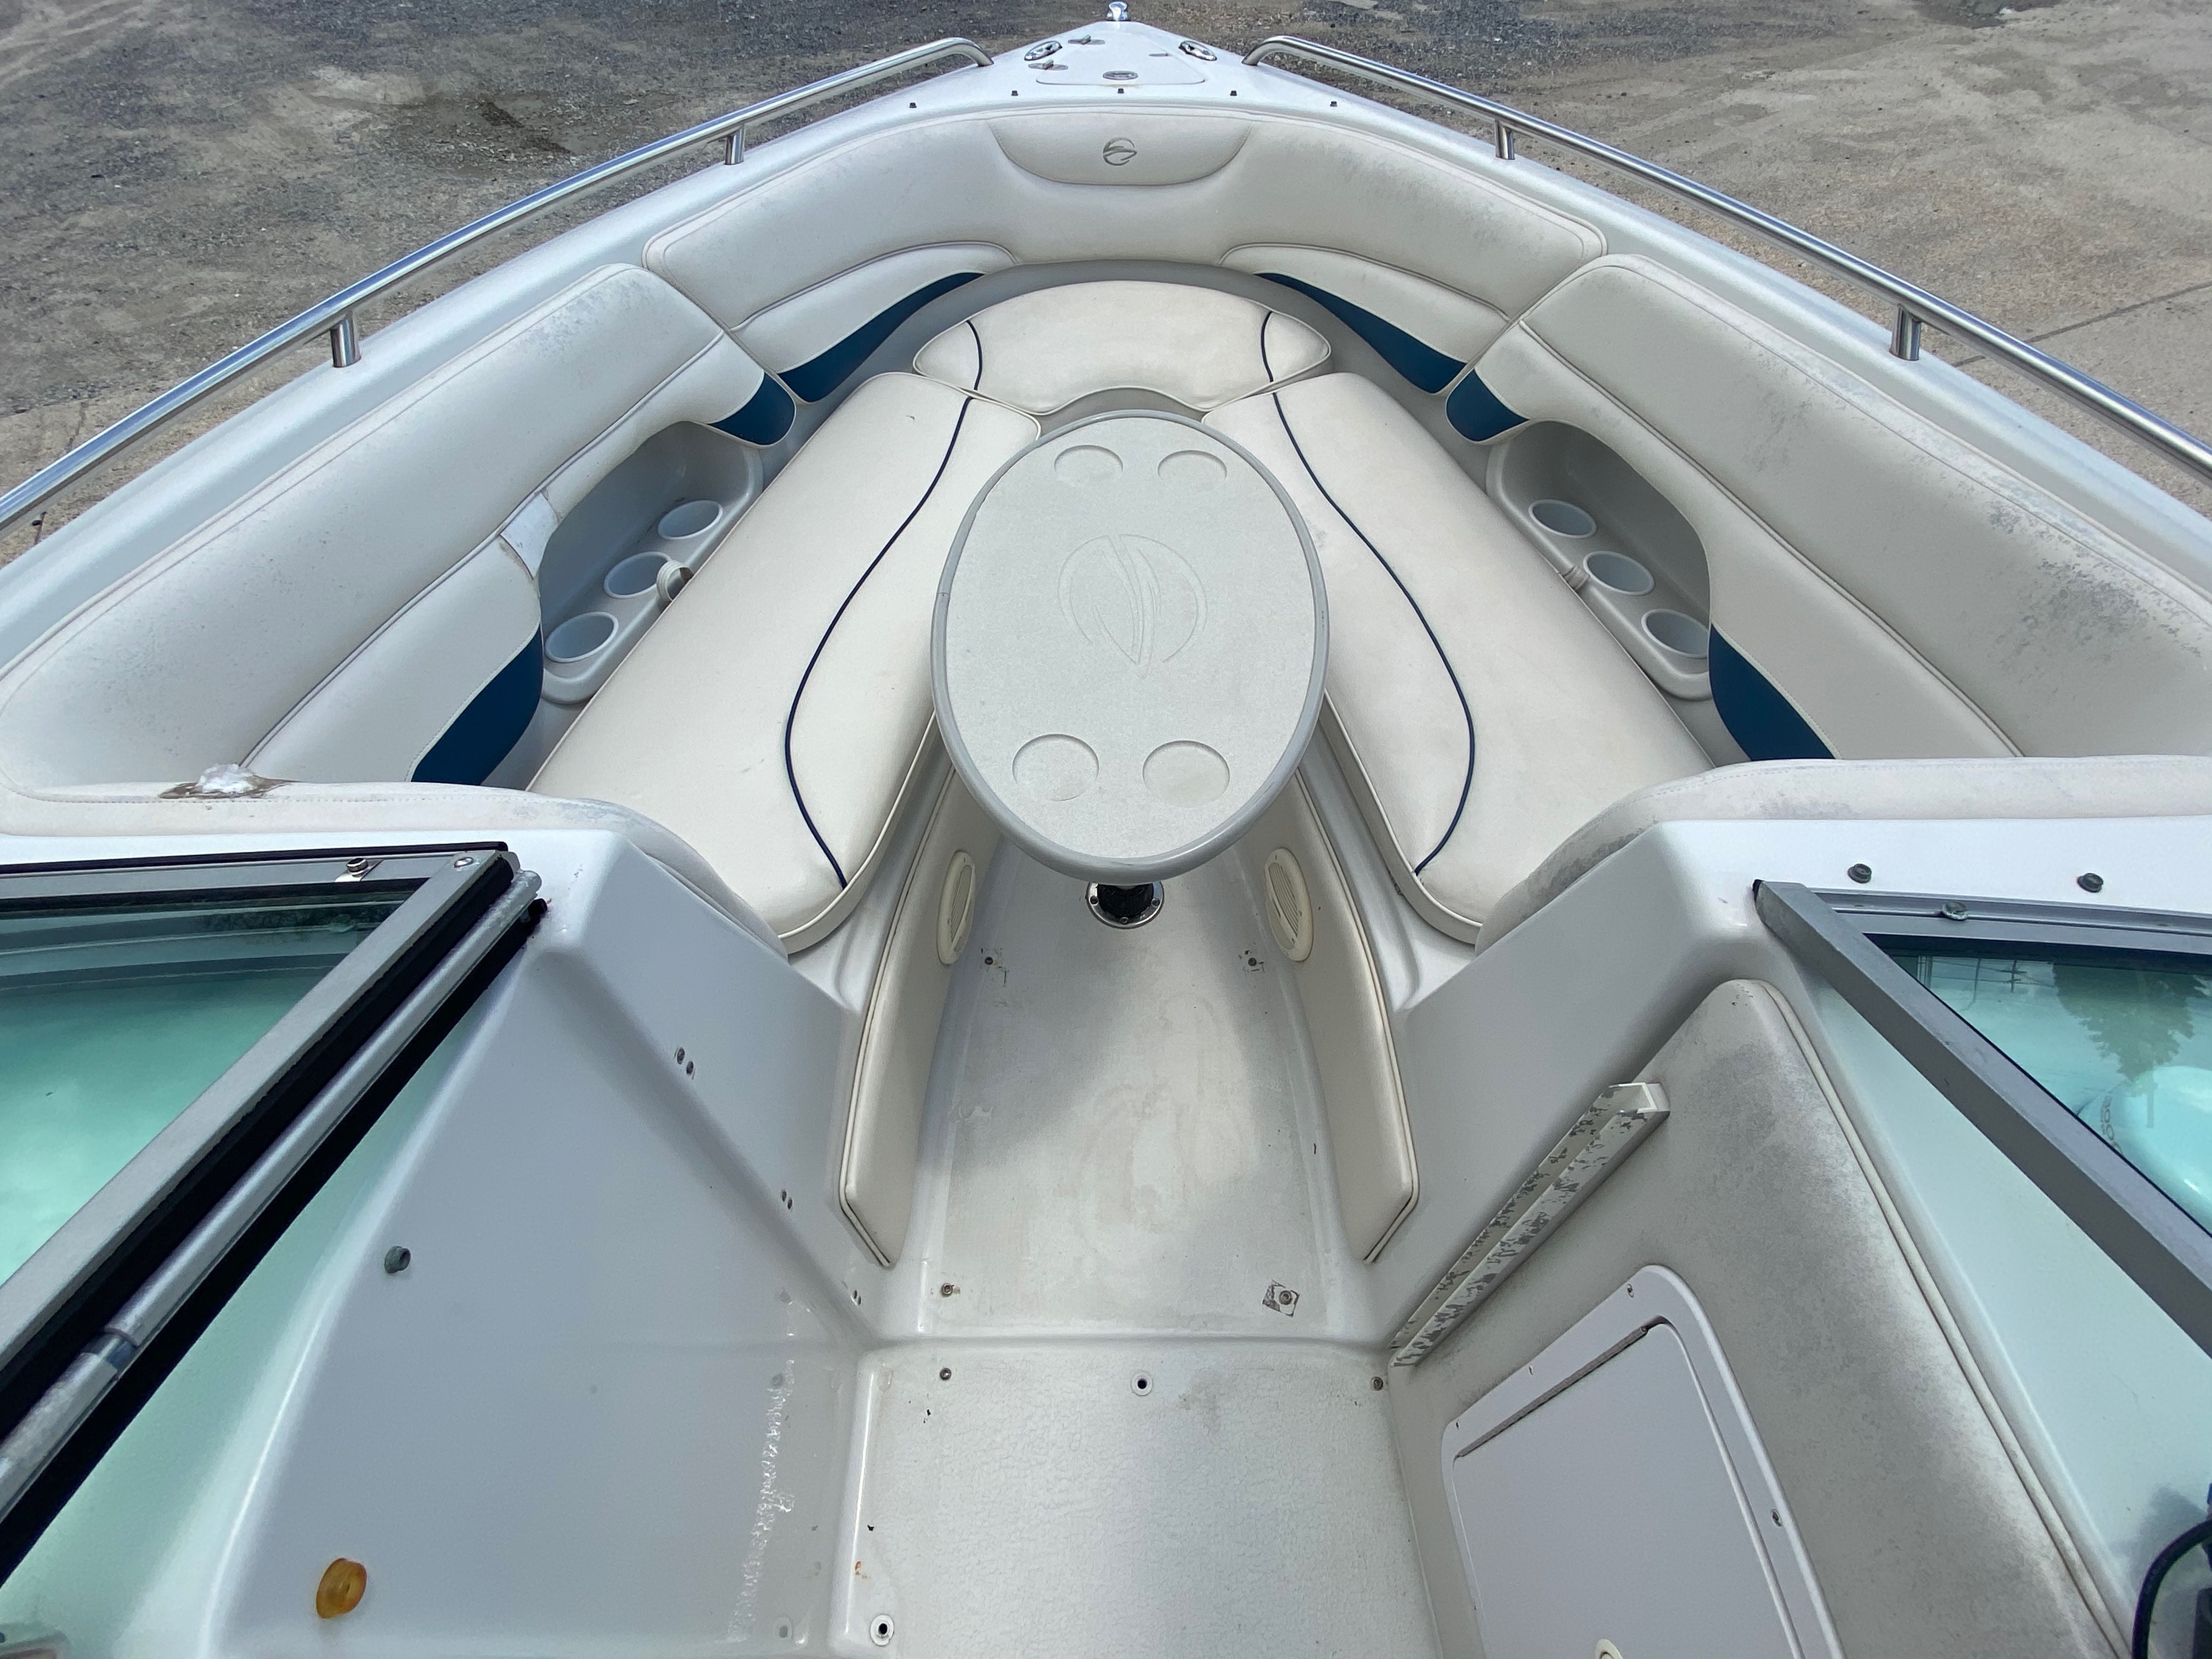 2005 Crownline boat for sale, model of the boat is 236 & Image # 13 of 17